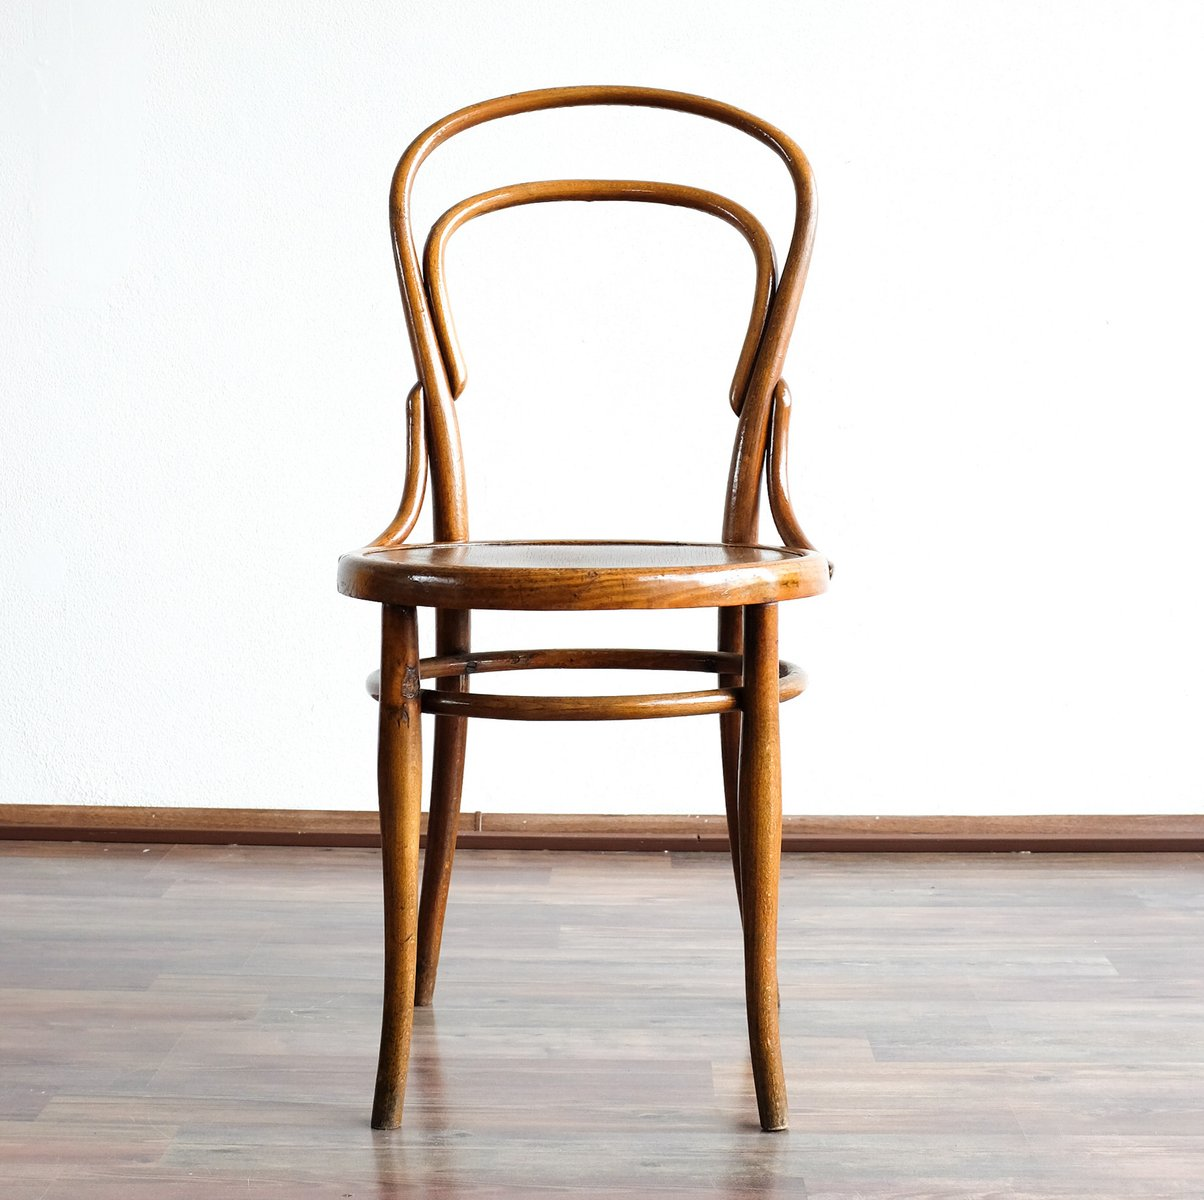 No 14 chair from thonet 1890s for sale at pamono for Sedia 14